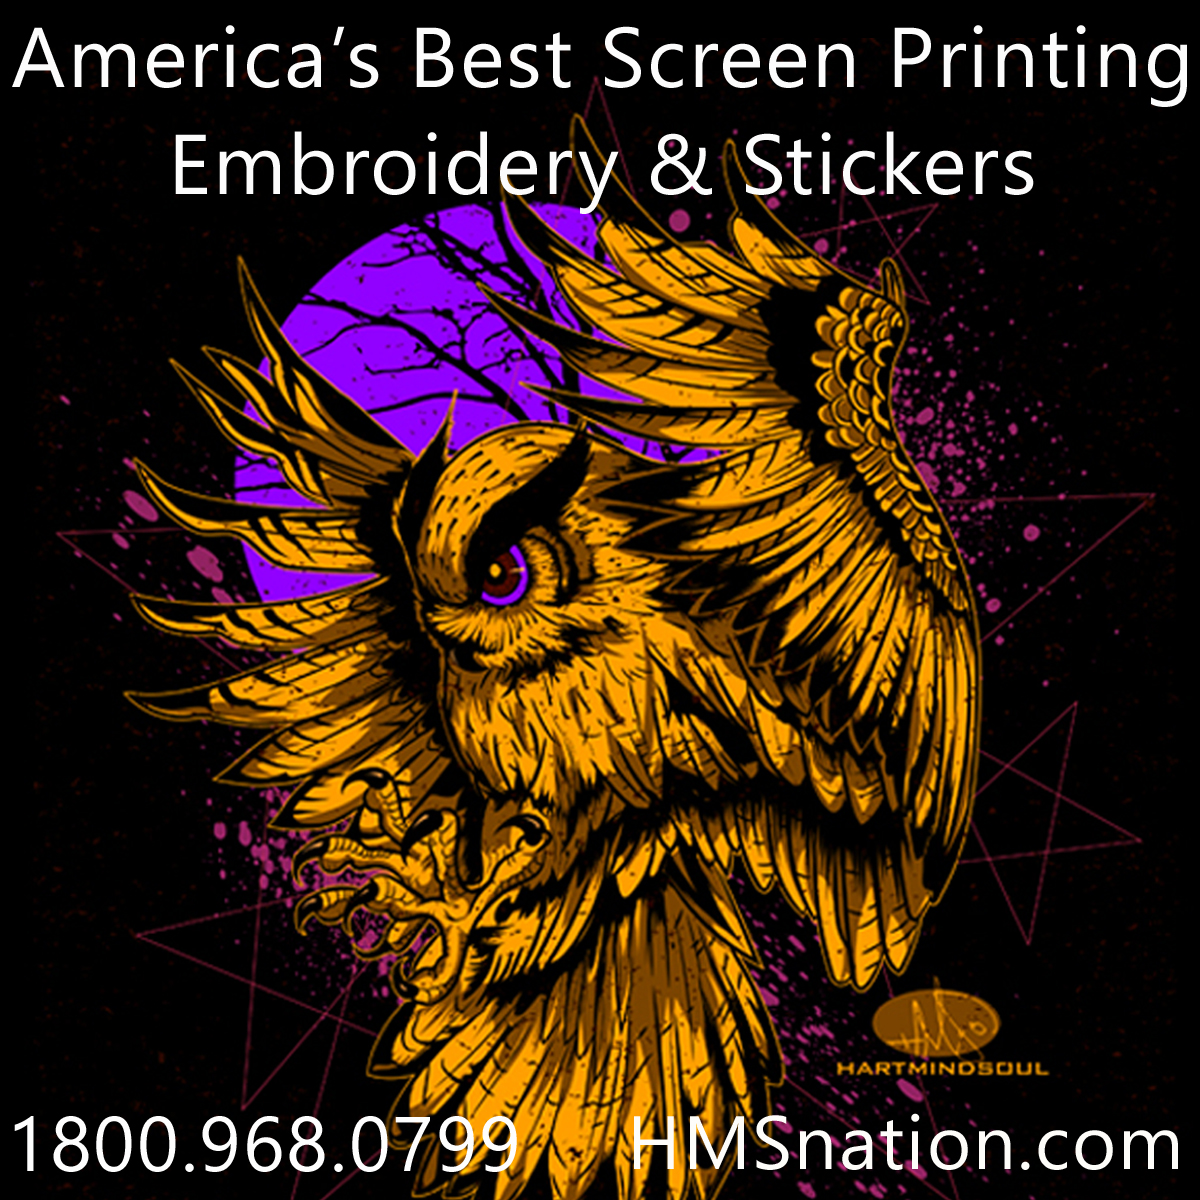 americas best screen printing reviews